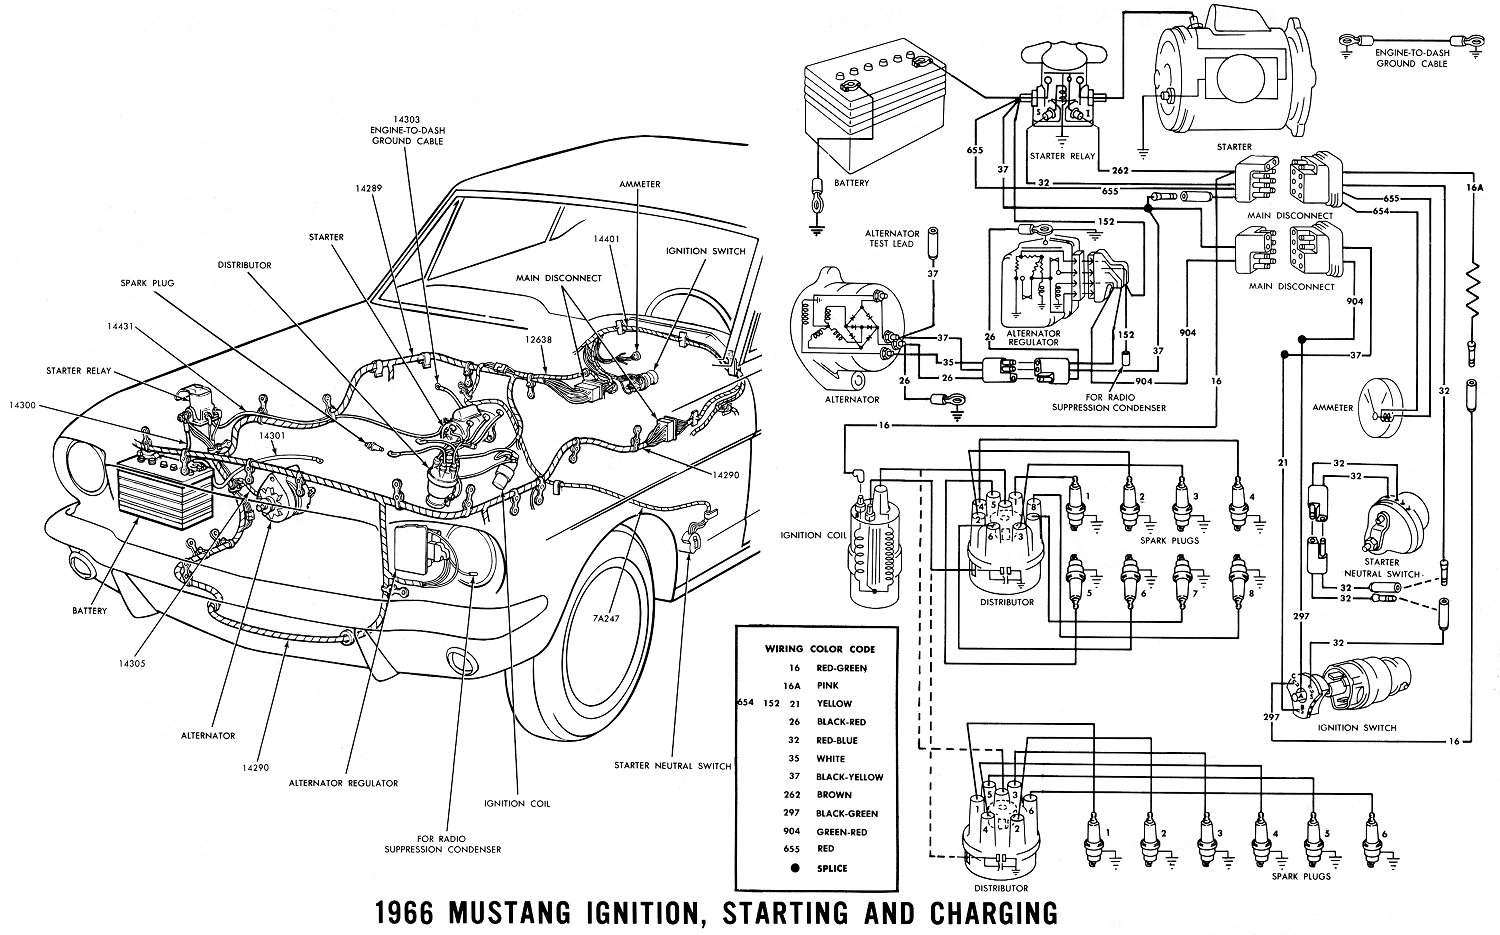 1966 Mustang Ignition, Starting and Charging